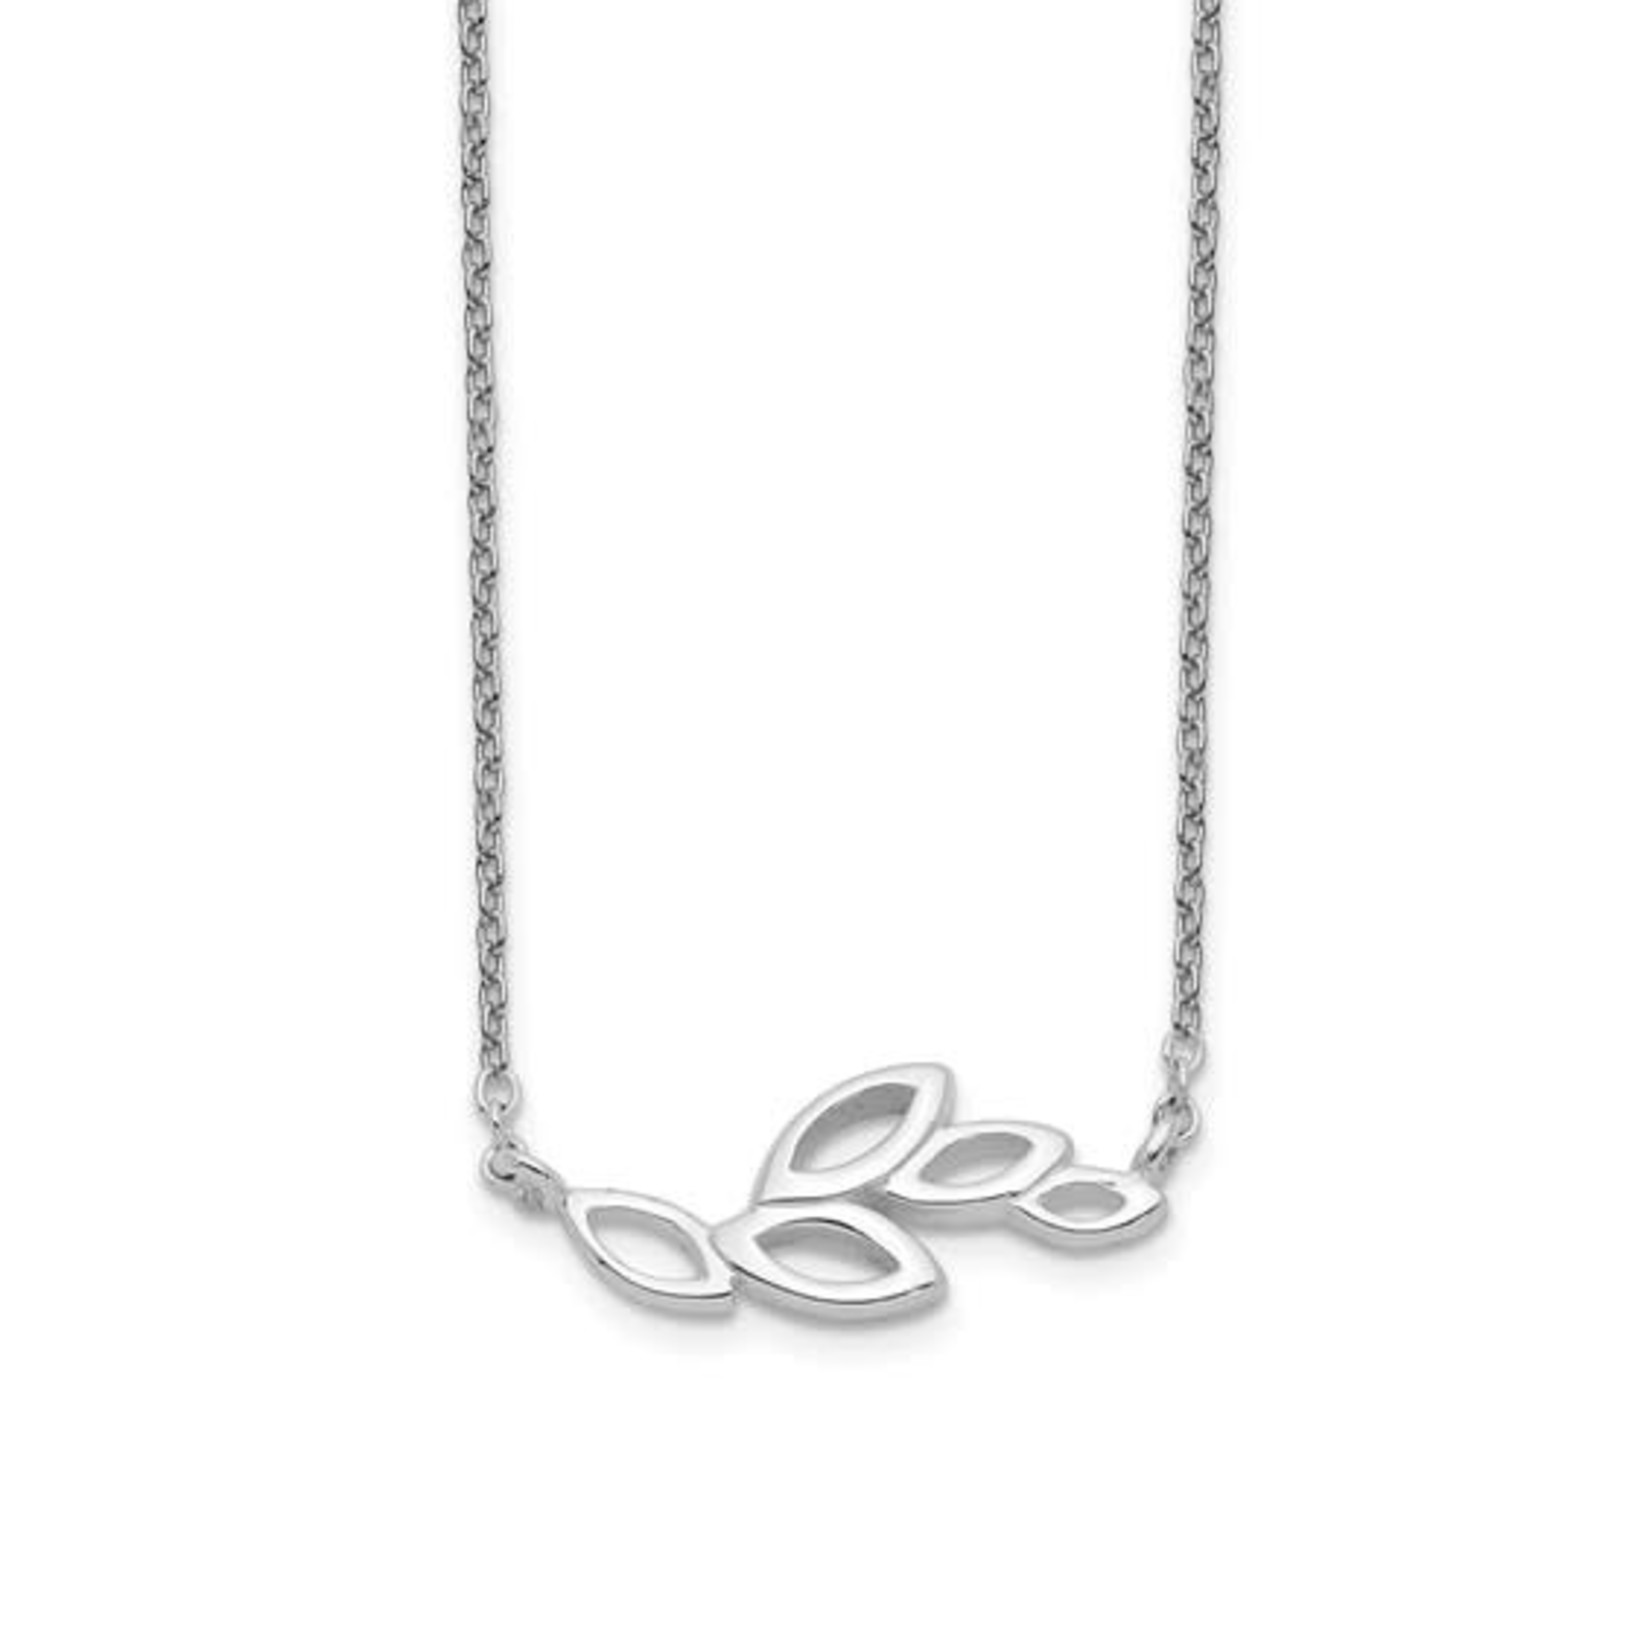 This Is Life Sterling Silver Polished Leaves Necklace